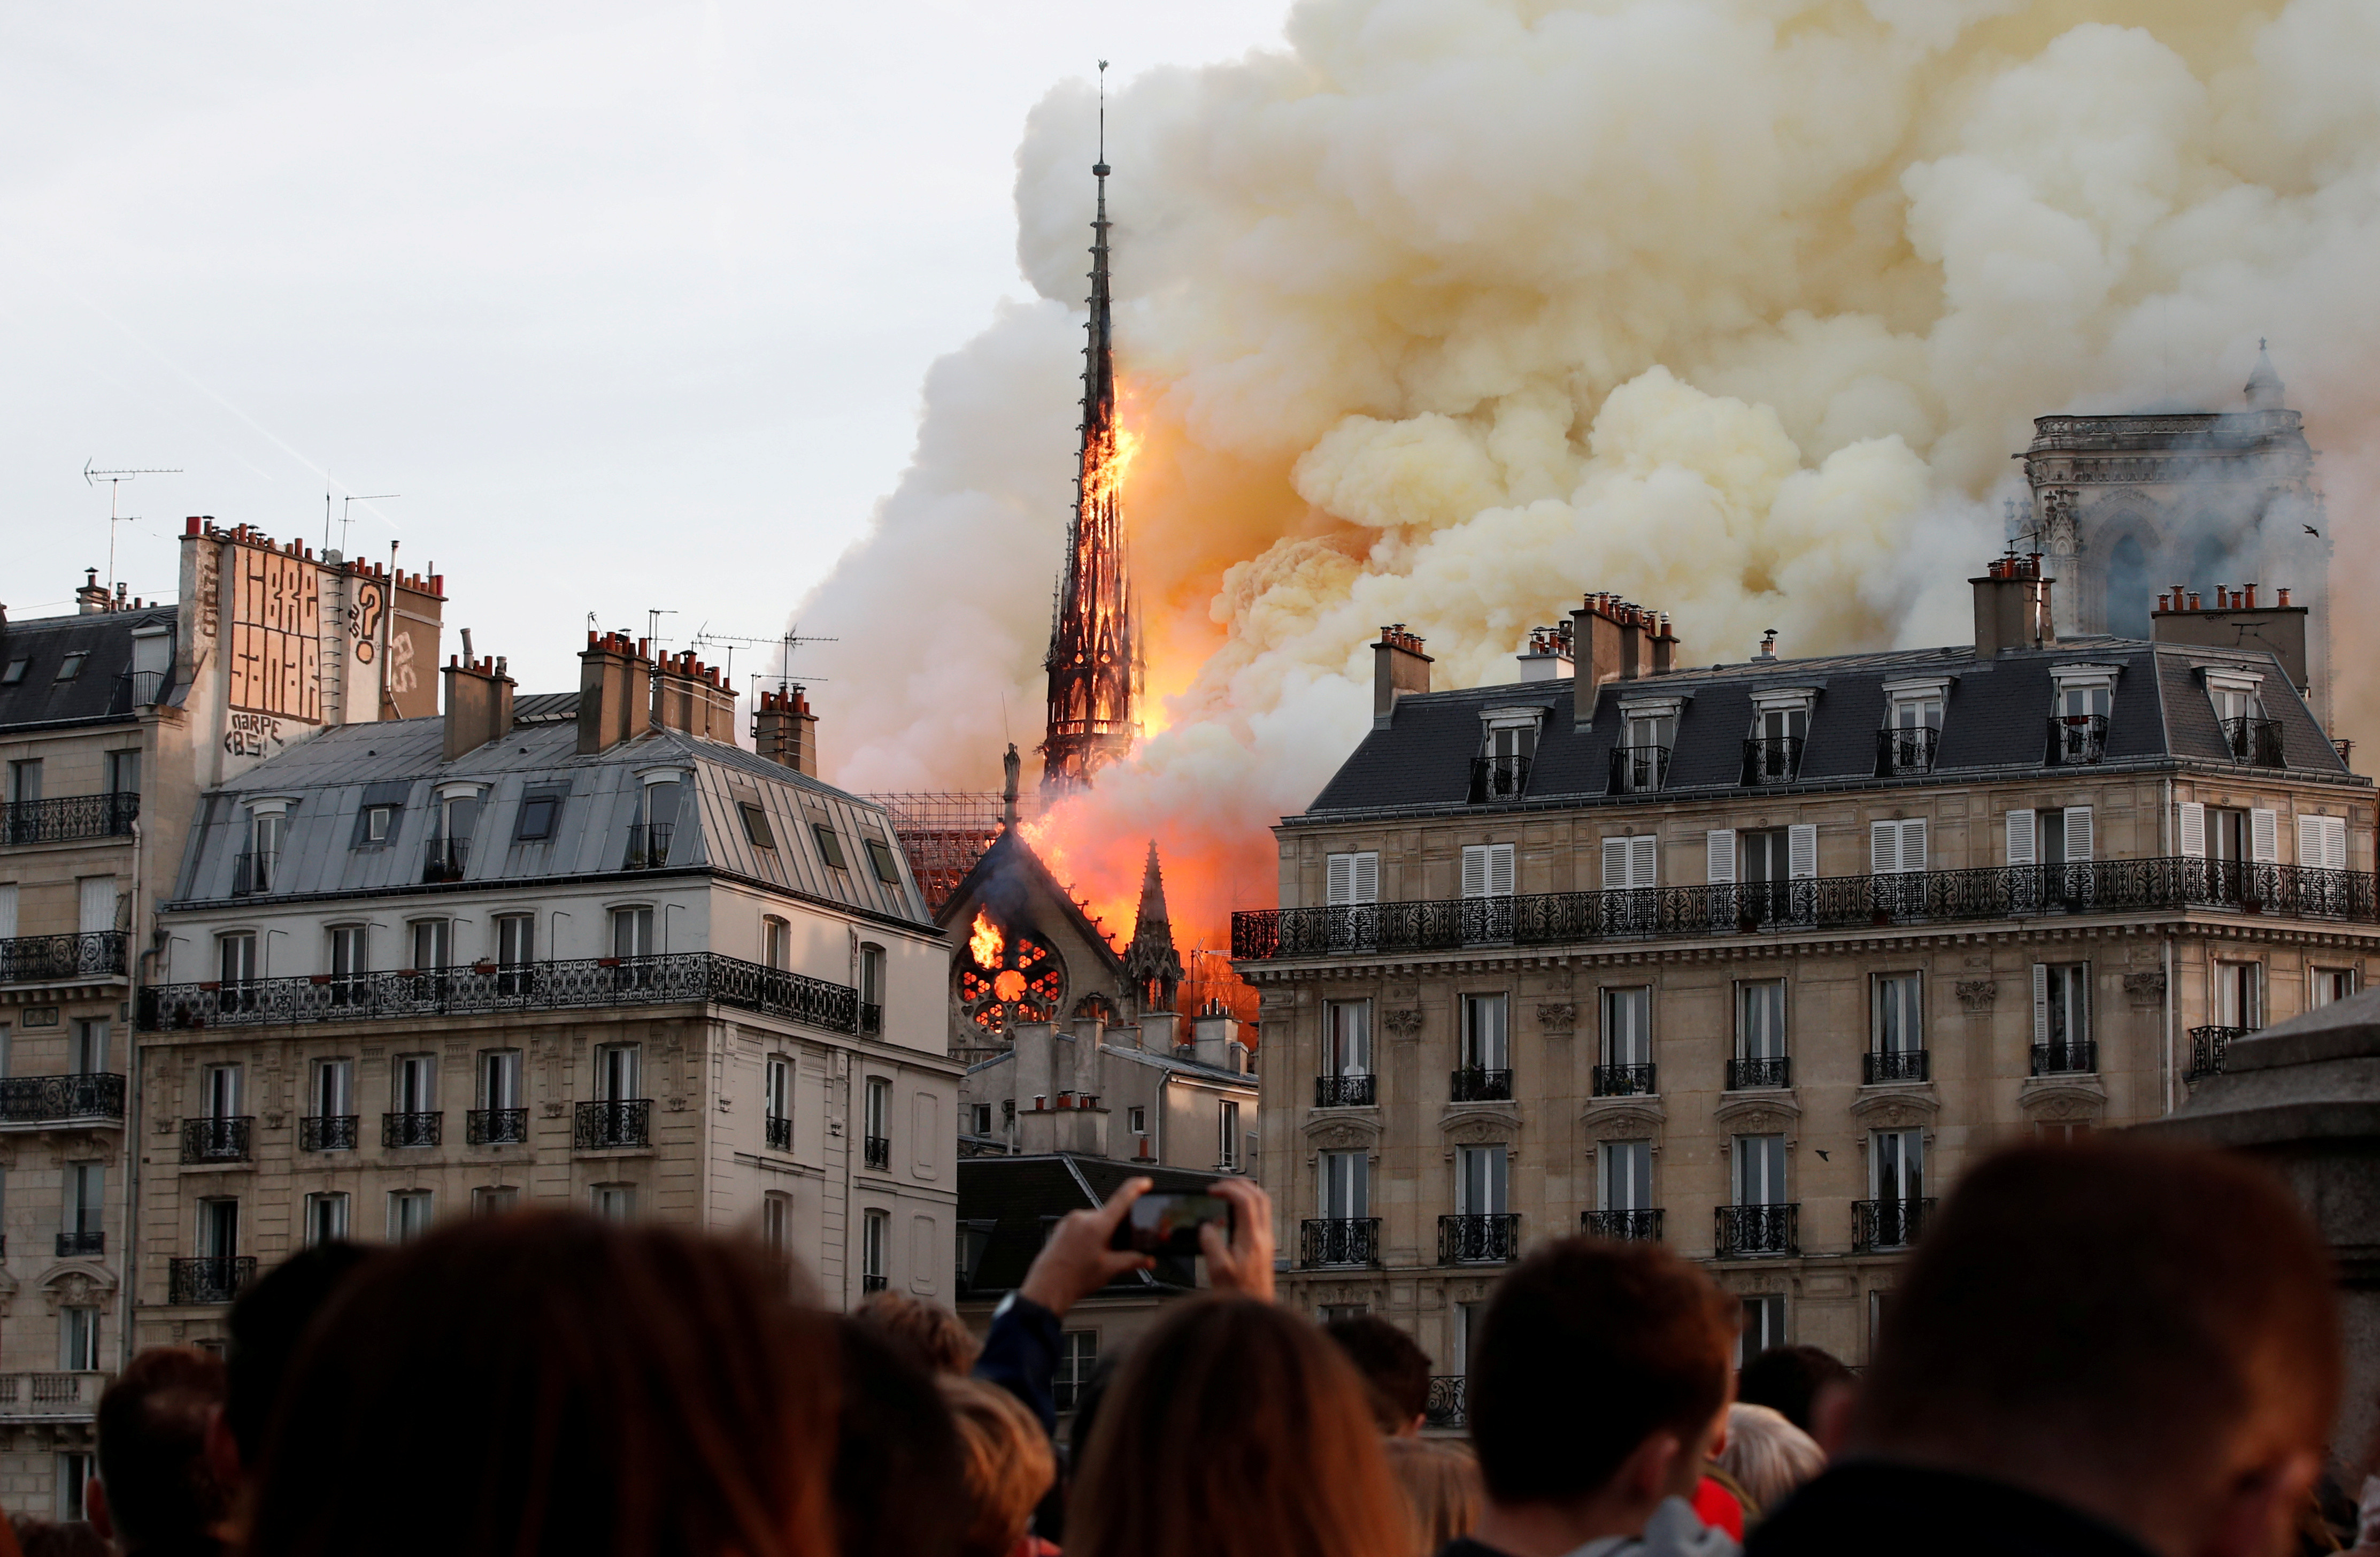 Smoke billows as fire engulfs the spire of Notre Dame Cathedral in Paris, France, April 15, 2019. Picture taken April 15, 2019